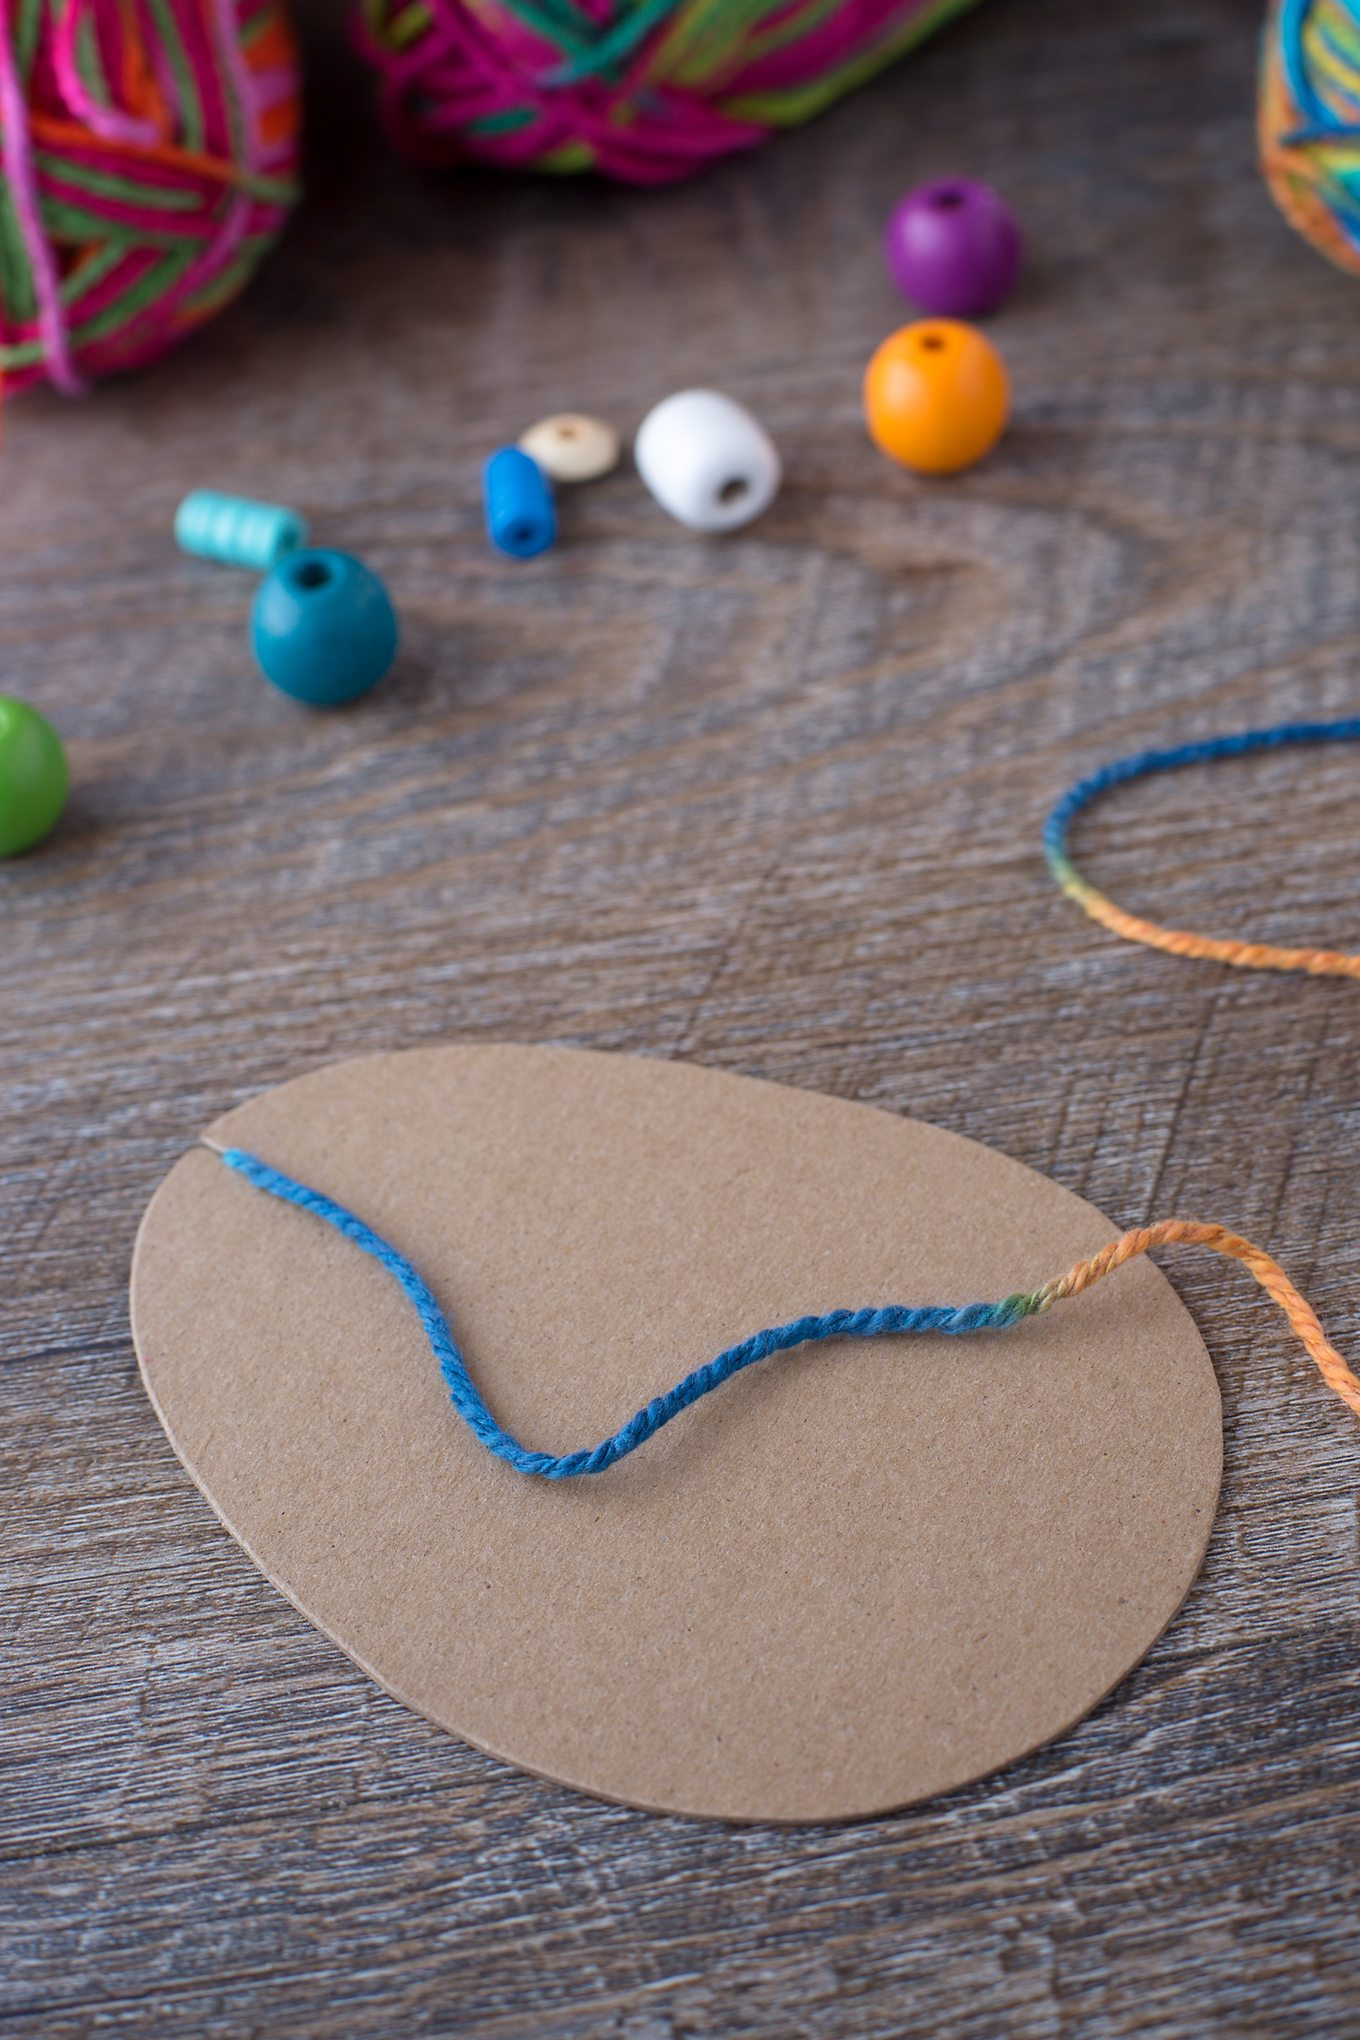 Just in time for Easter, kids can learn how to make a colorful Yarn Wrapped Easter Egg Craft at school or home. Such a pretty fine-motor craft for kids!